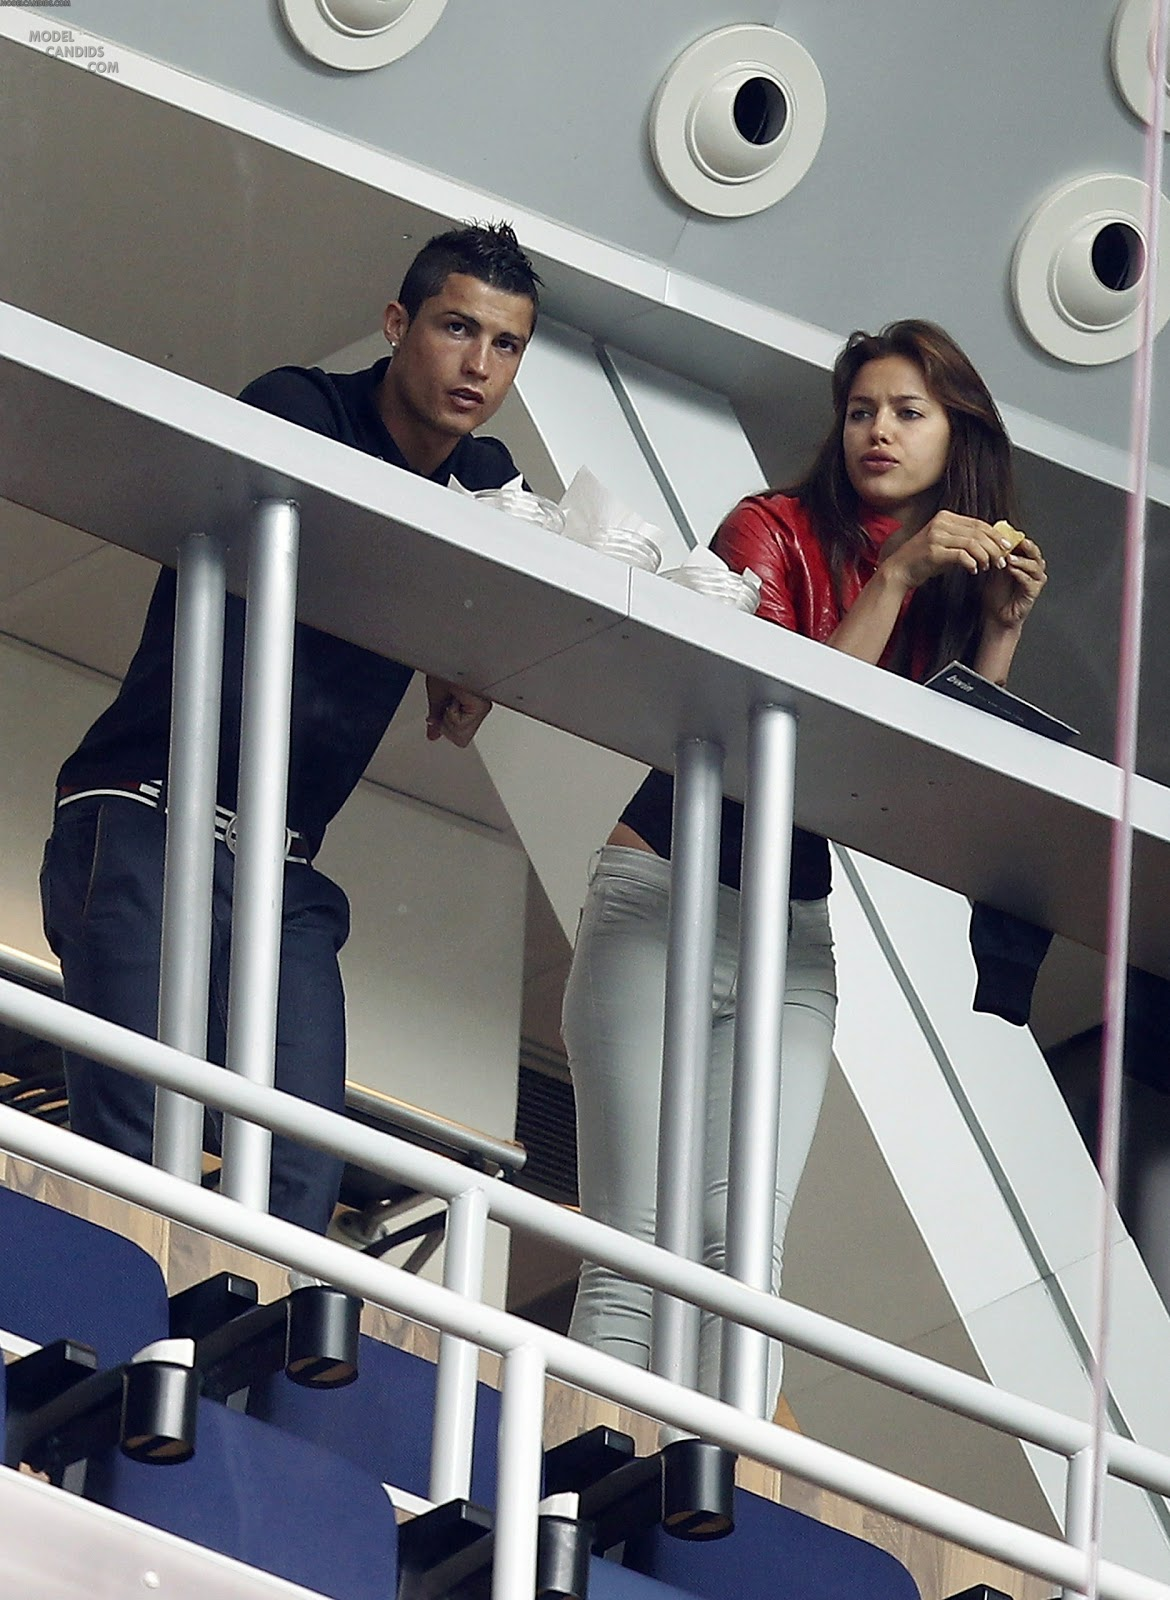 new sports stars cristiano ronaldo girlfriend irina shayk